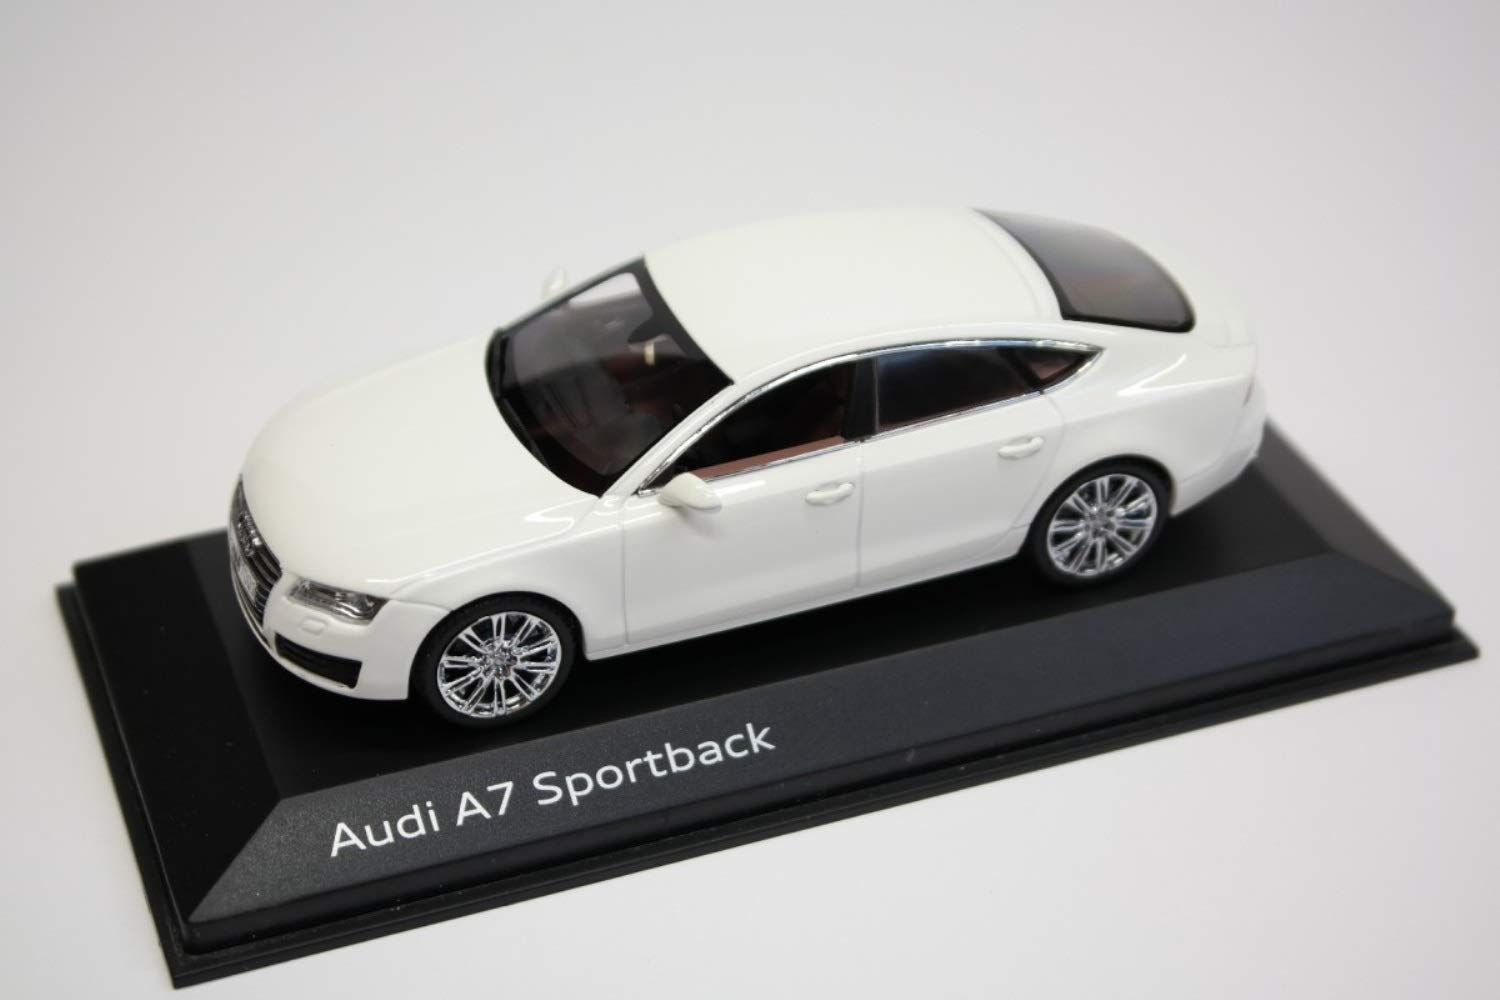 Audi A7 Sportback C7 Ibis White 2010 Year - Executive car (E) - 1/43 Scale Collectible Model Vehicle - 5-Door Liftback, Dealer Edition by 1/43 AZEBUY - SUPERCARS